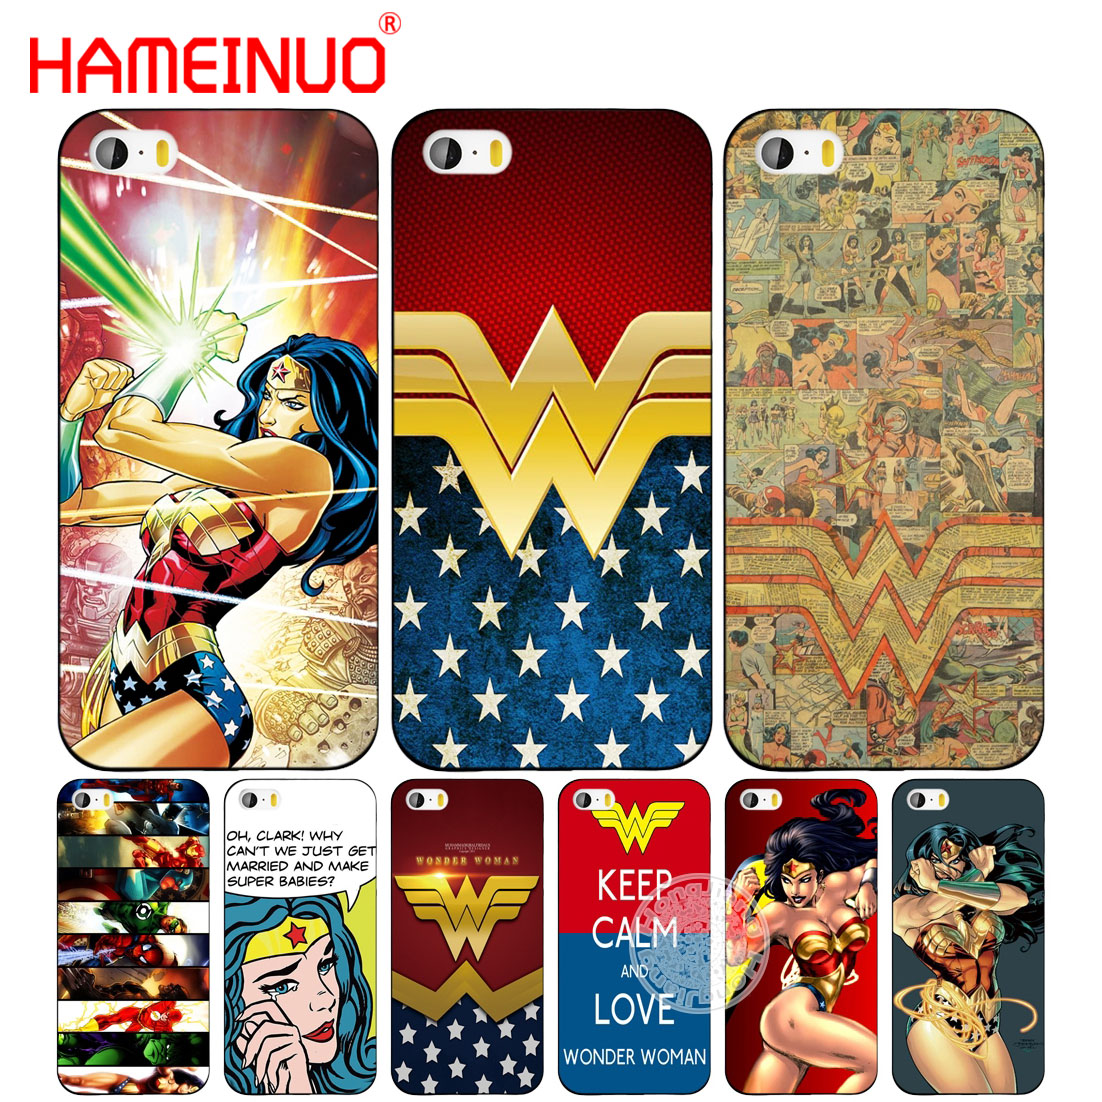 watch e5fa2 daec9 US $1.99 32% OFF|HAMEINUO new wonder women cell phone Cover case for iphone  6 4 4s 5 5s SE 5c 6 6s 7 8 plus case for iphone 7 X-in Half-wrapped Case ...